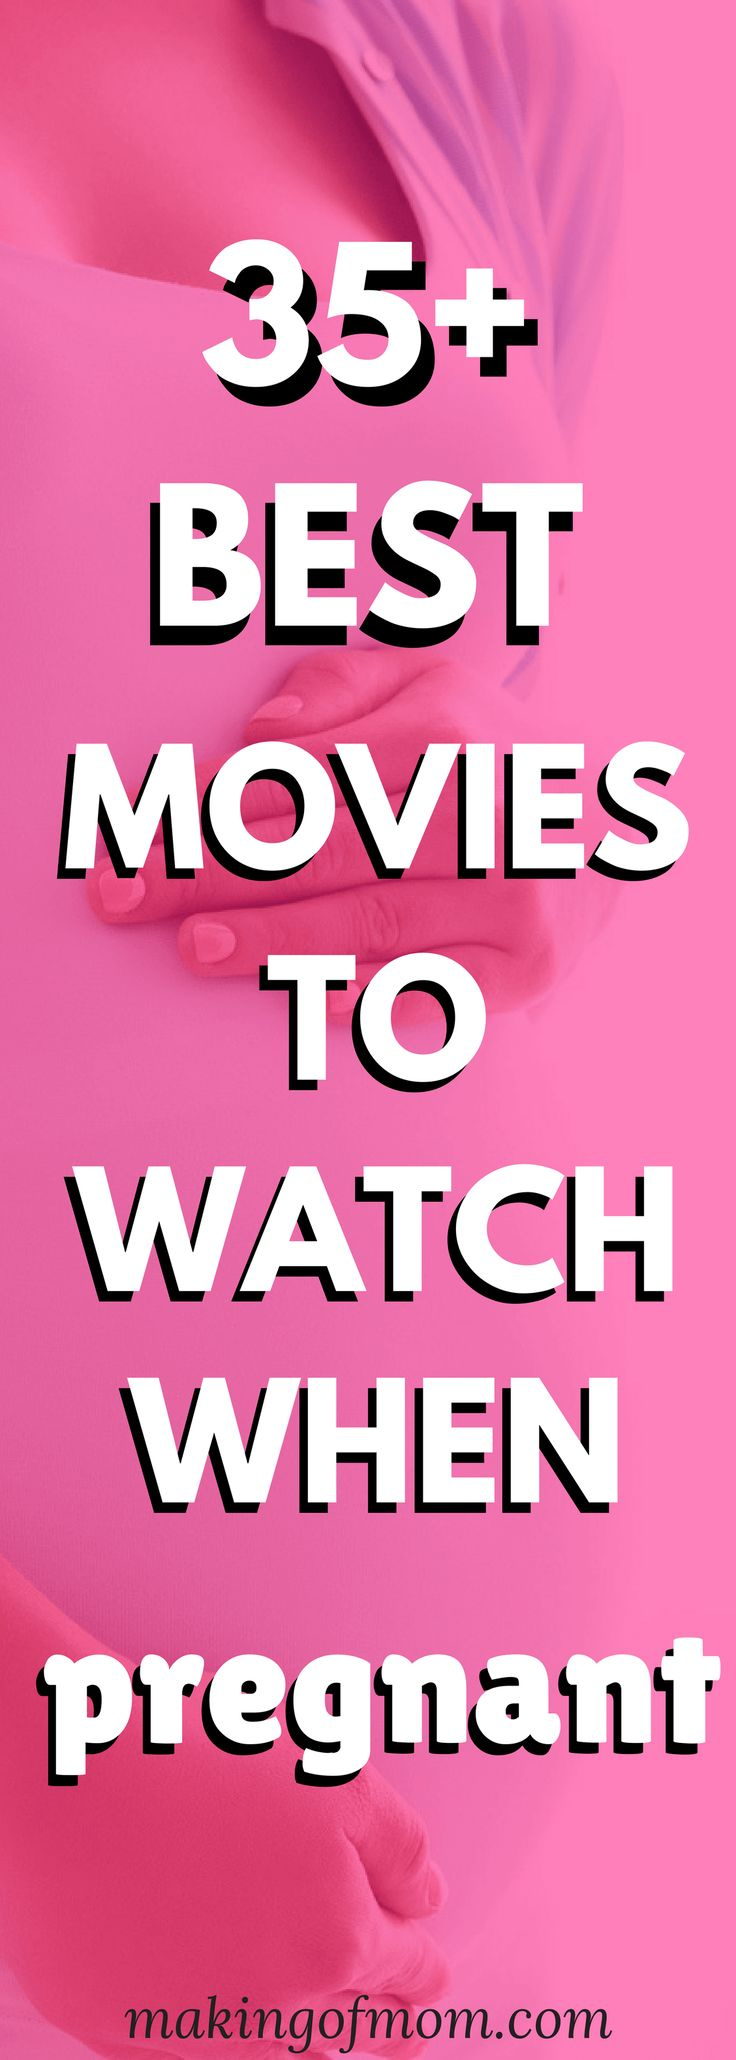 Can't sleep? Suffering from pregnancy insomnia? Or just heartburn or general discomfort? Here are 35 pregnancy movies to watch when you're pregnant. Some are hilarious, some are informative, but they're guaranteed to keep you occupied! Have you seen them all?